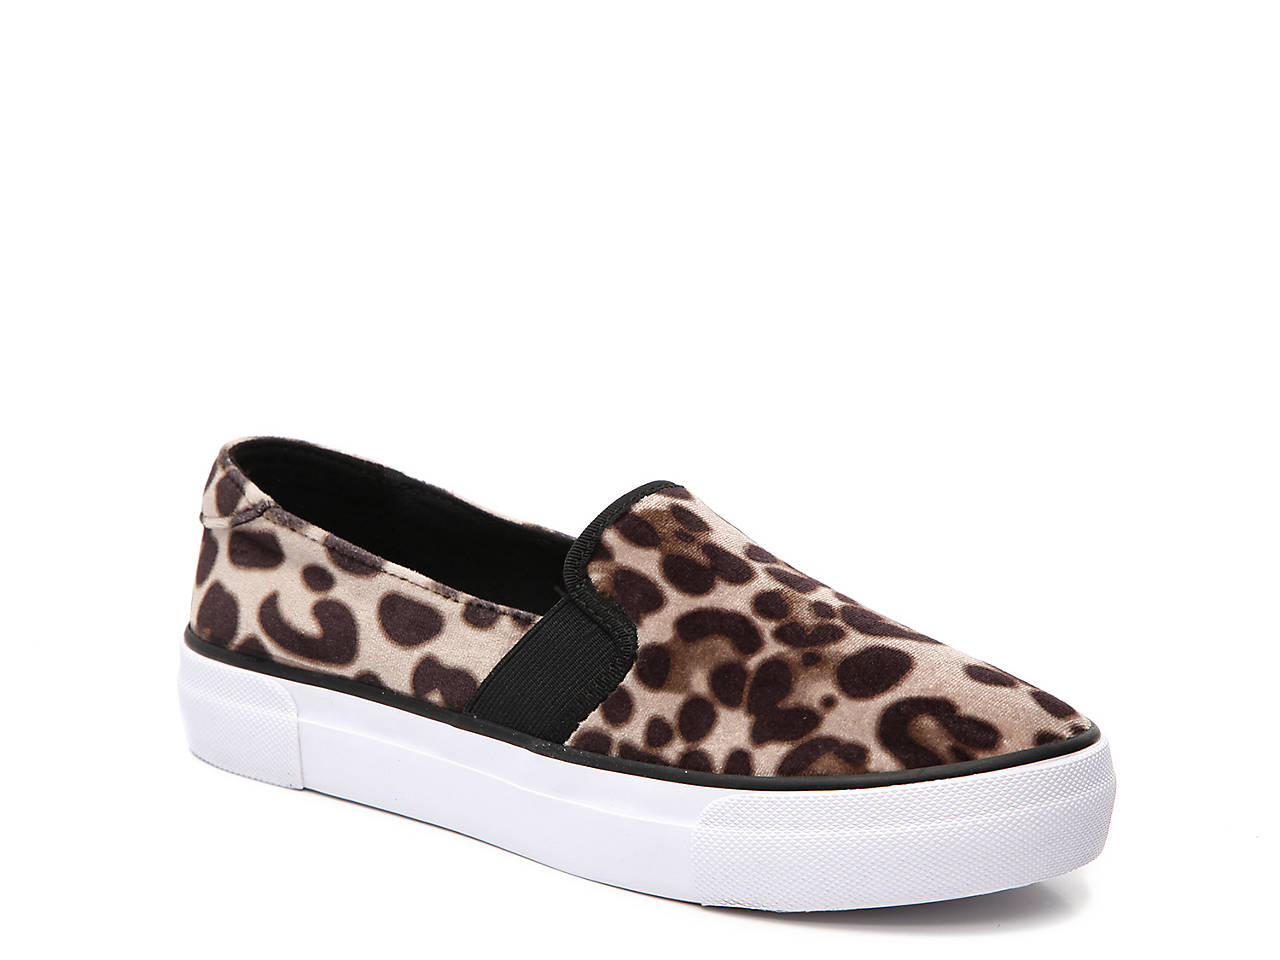 Gilley Velvet Slip-On Sneaker